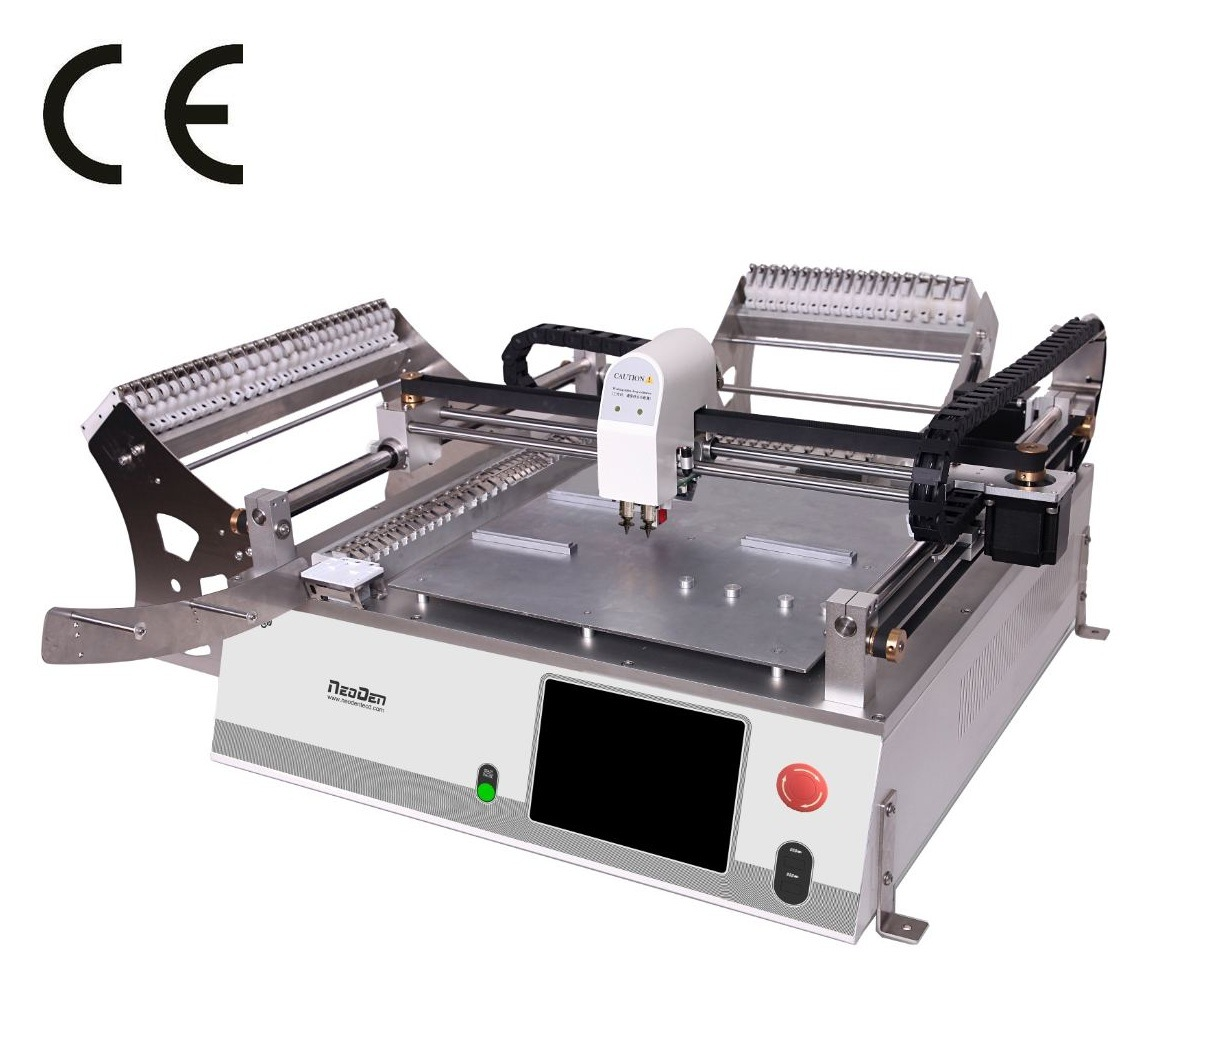 China Pick And Place Machine Pcb Assembly Equipment Smt Production Circuit Board Printing Machinepcb Manufacturing Line Neoden3v Tm220a Solder Printer